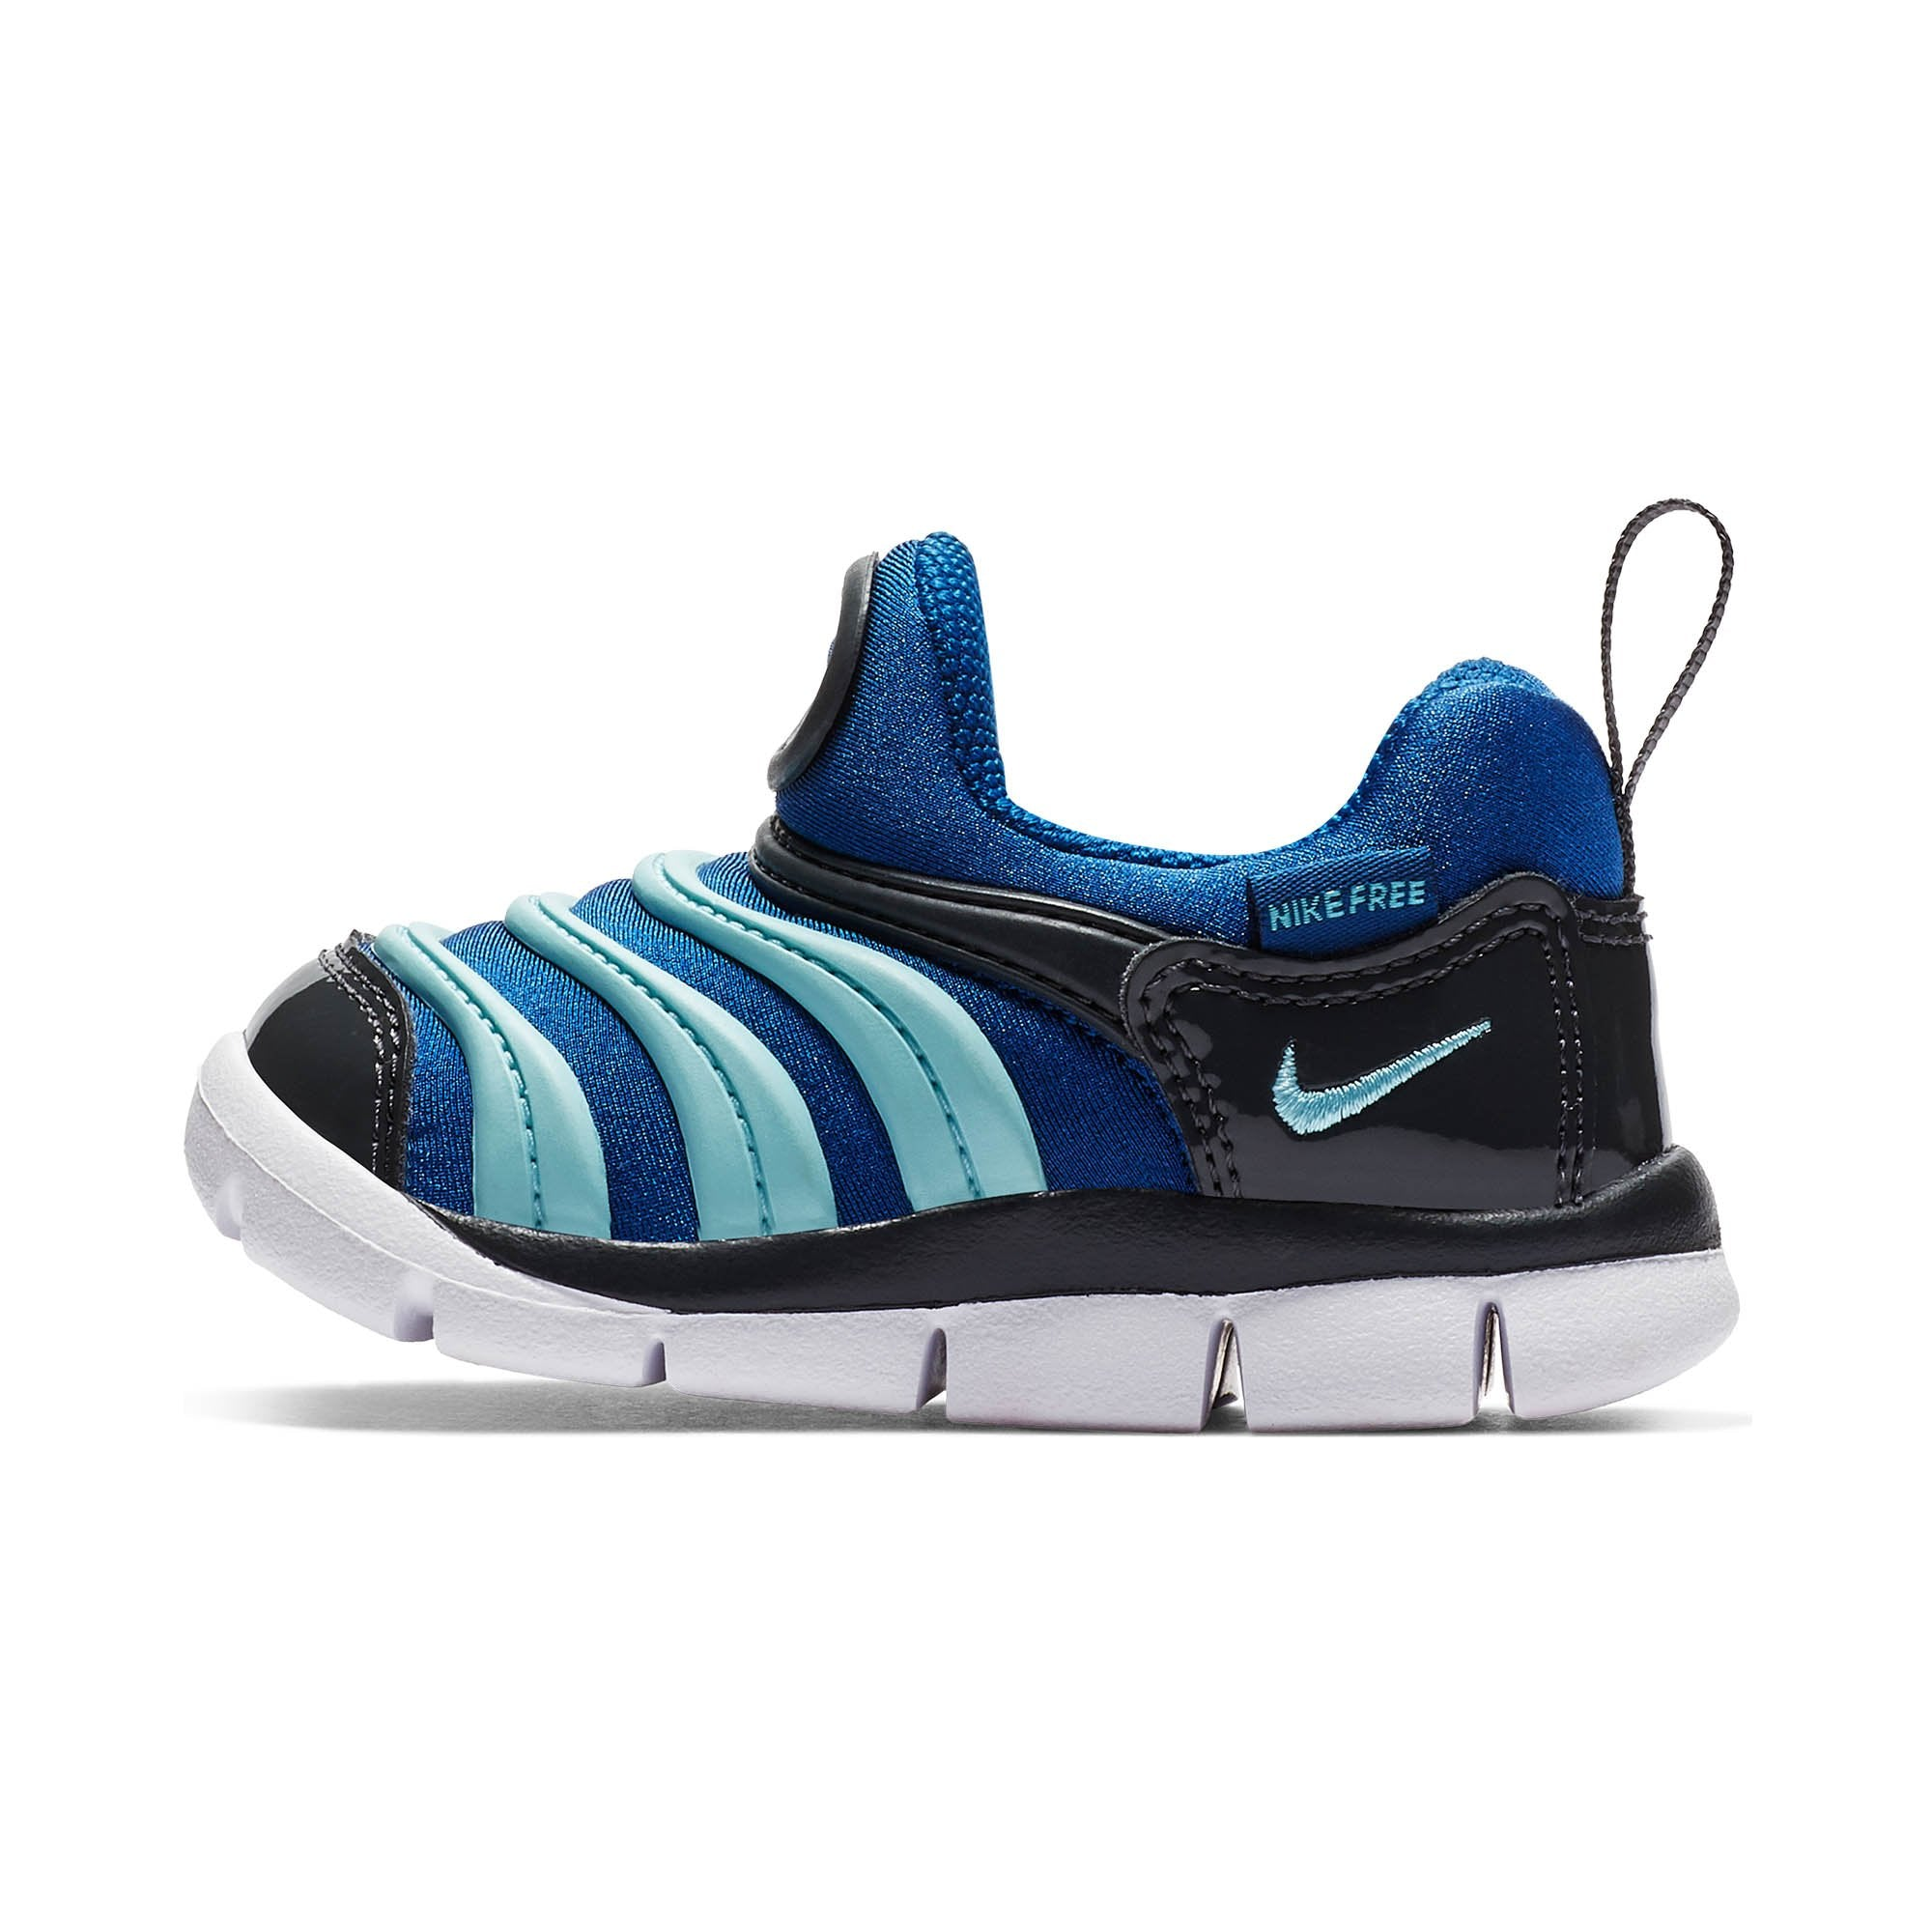 Buy Nike Infant Dynamo Free Shoes Online in Singapore  ef2881e42